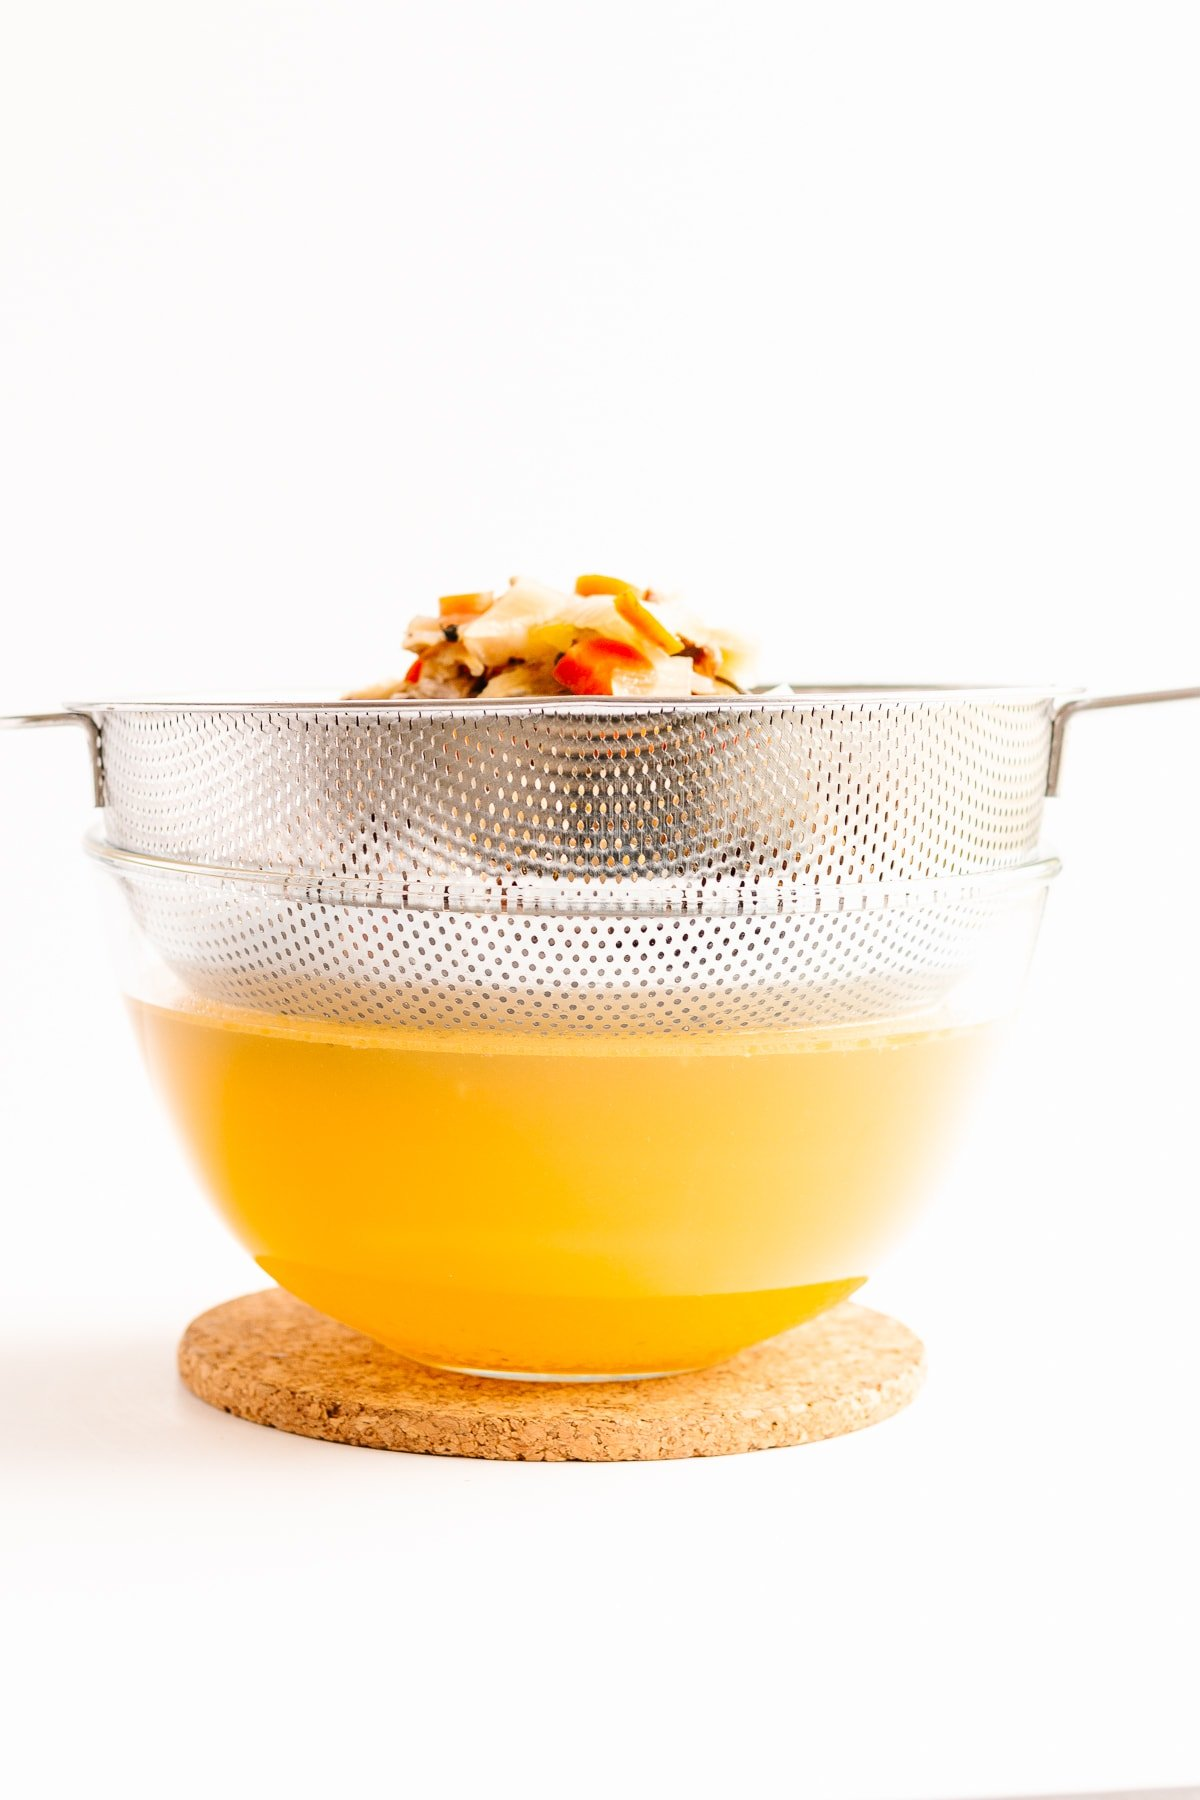 Fine mesh sieve positioned over clear glass bowl straining chicken broth.